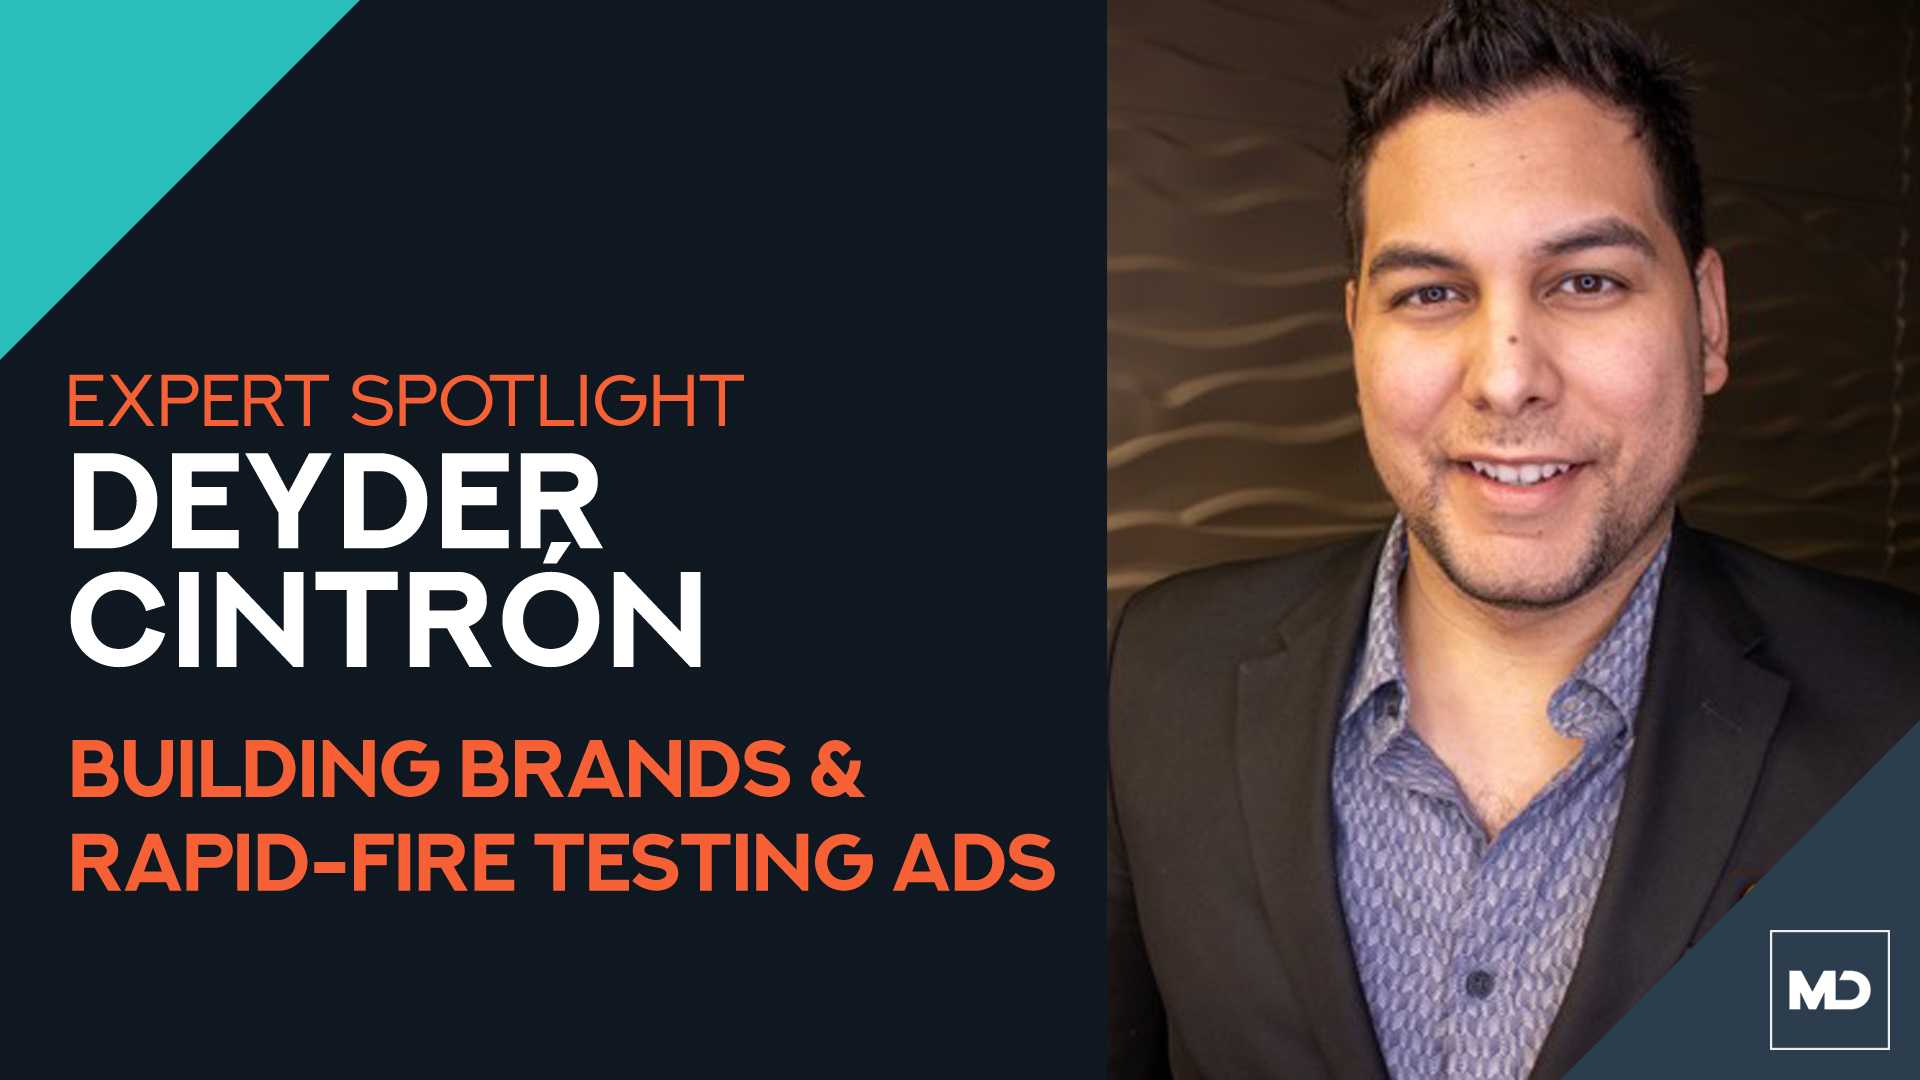 Deyder Cintron - Building Brands & Facebook Ads